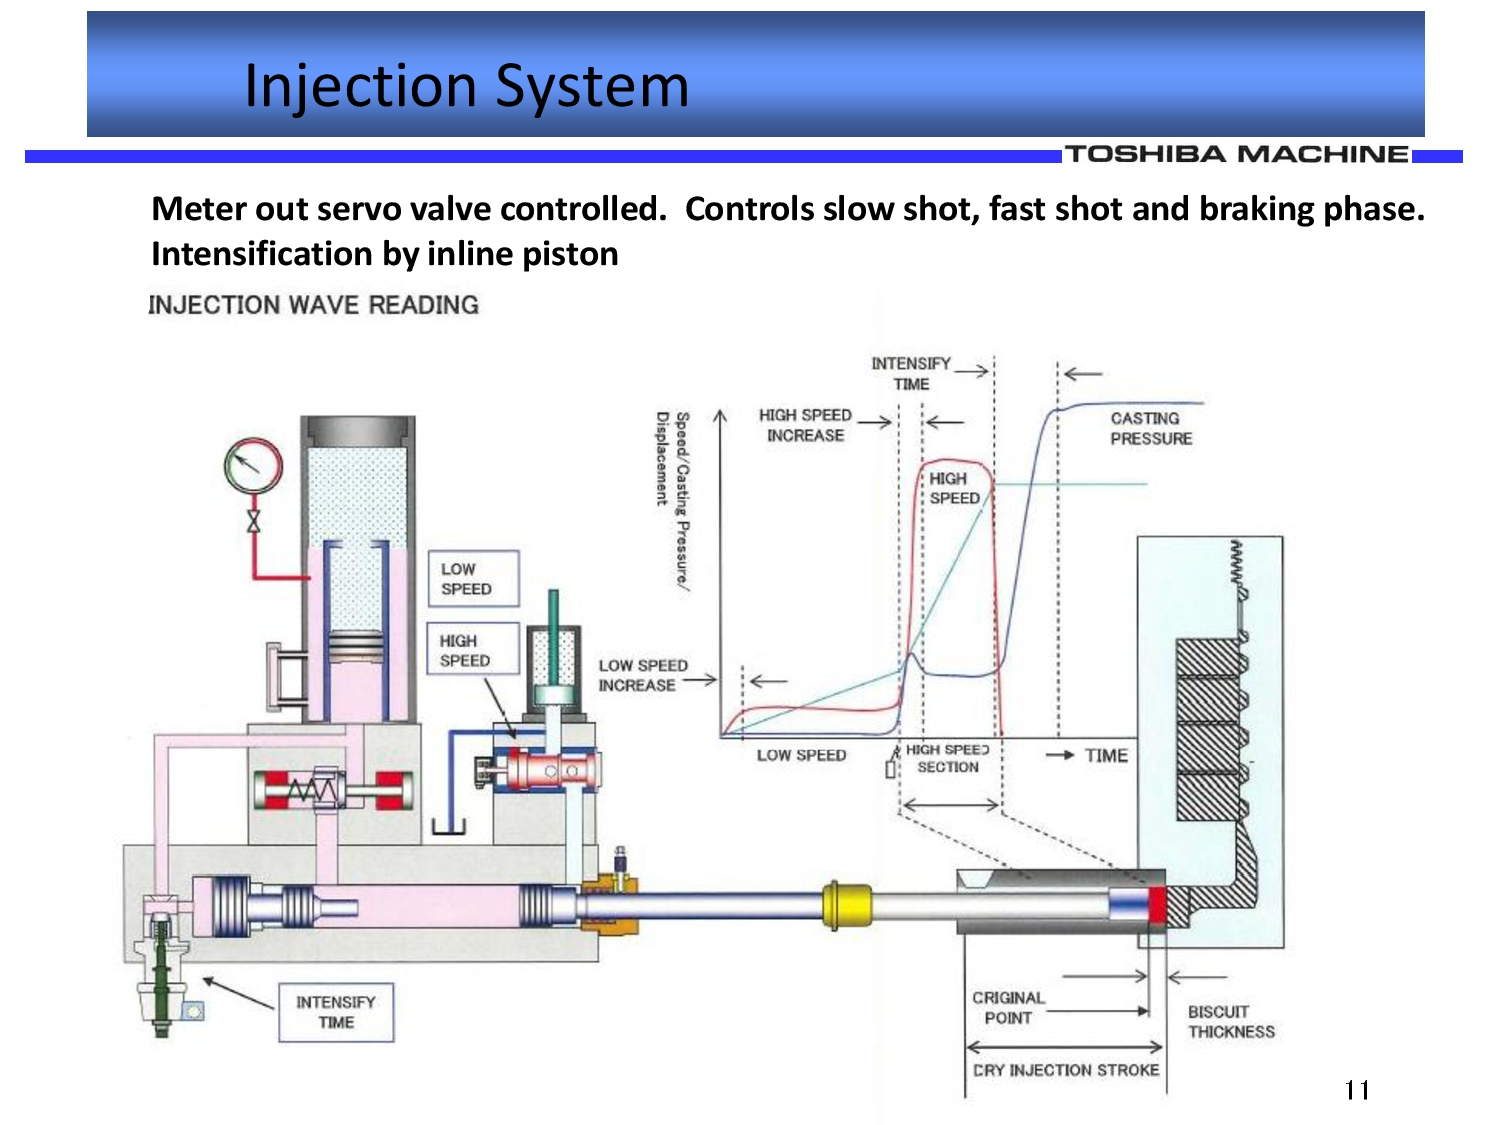 Toshiba Injection System